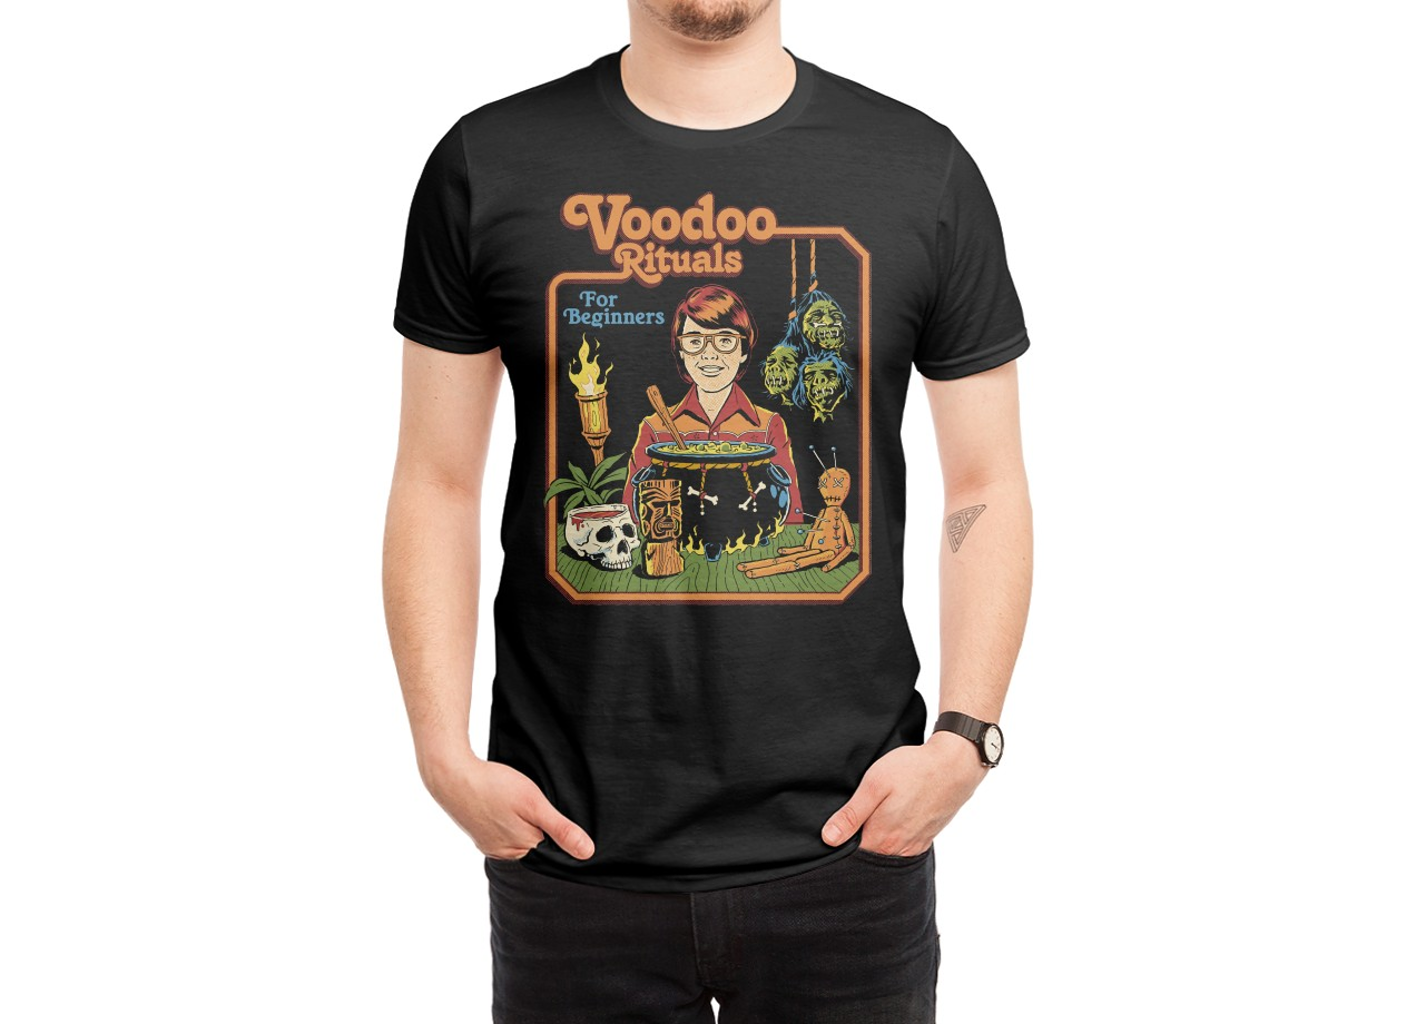 Threadless: Voodoo Rituals for Beginners (Black Variant)